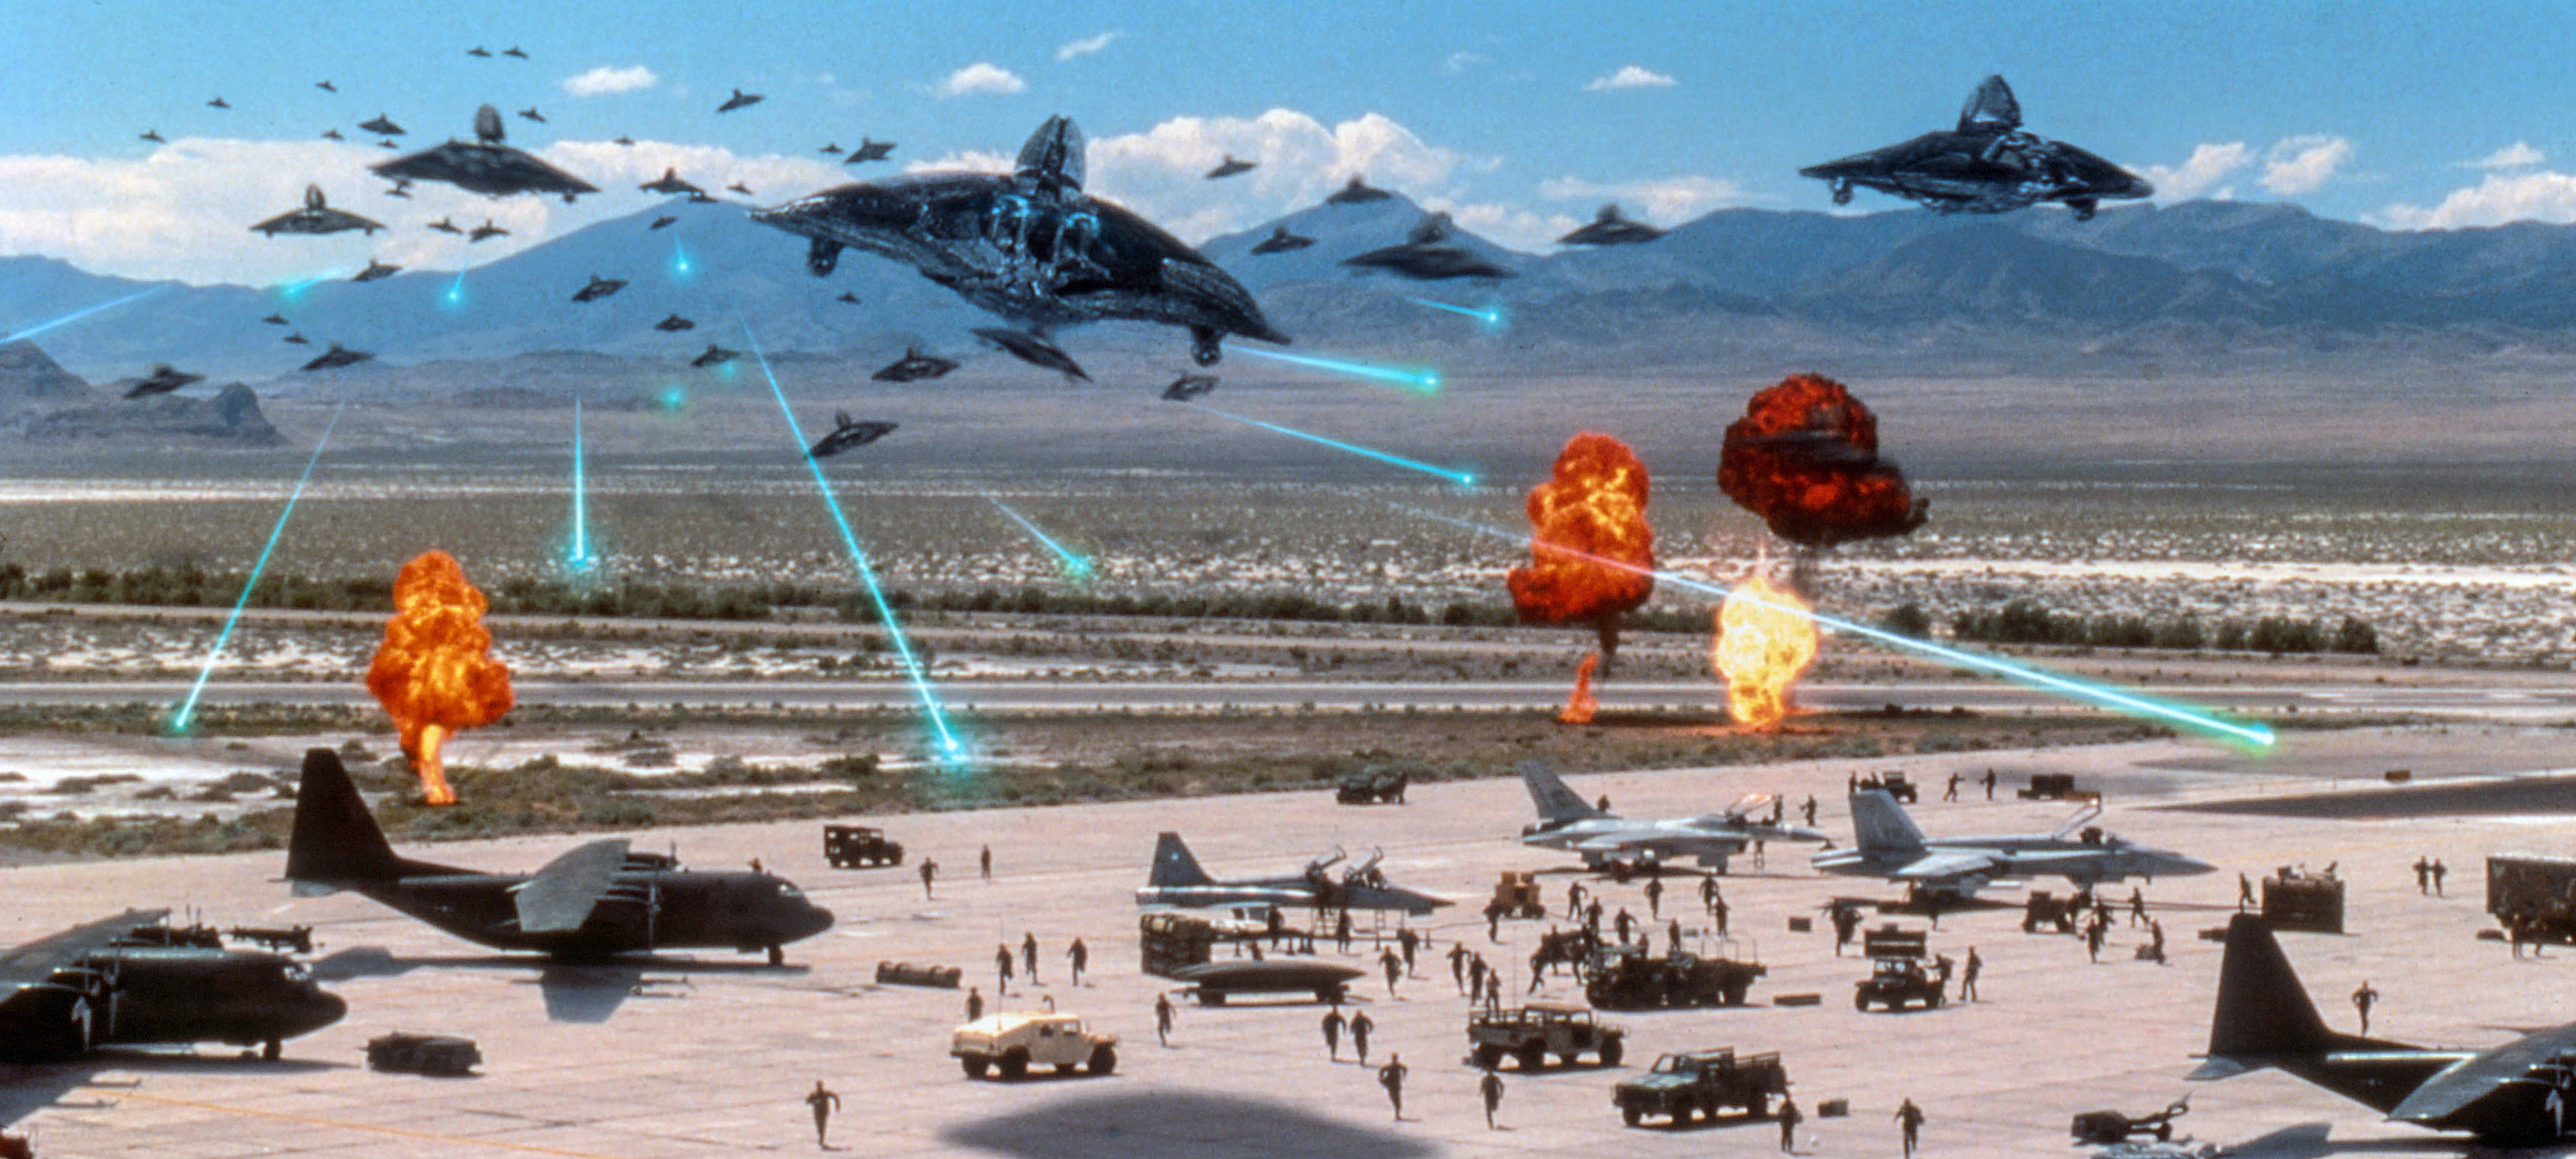 Planes lift off from an air base to fight incoming alien ships